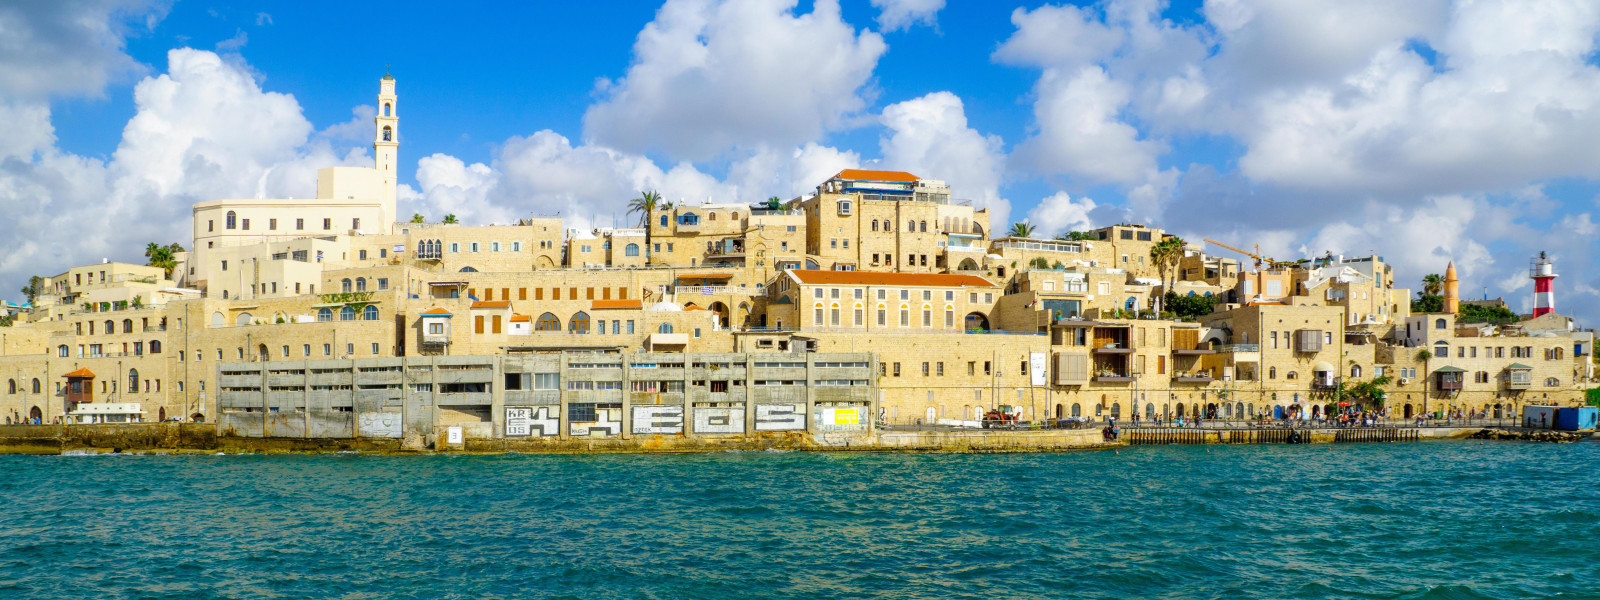 Jaffa-Tour-Guide